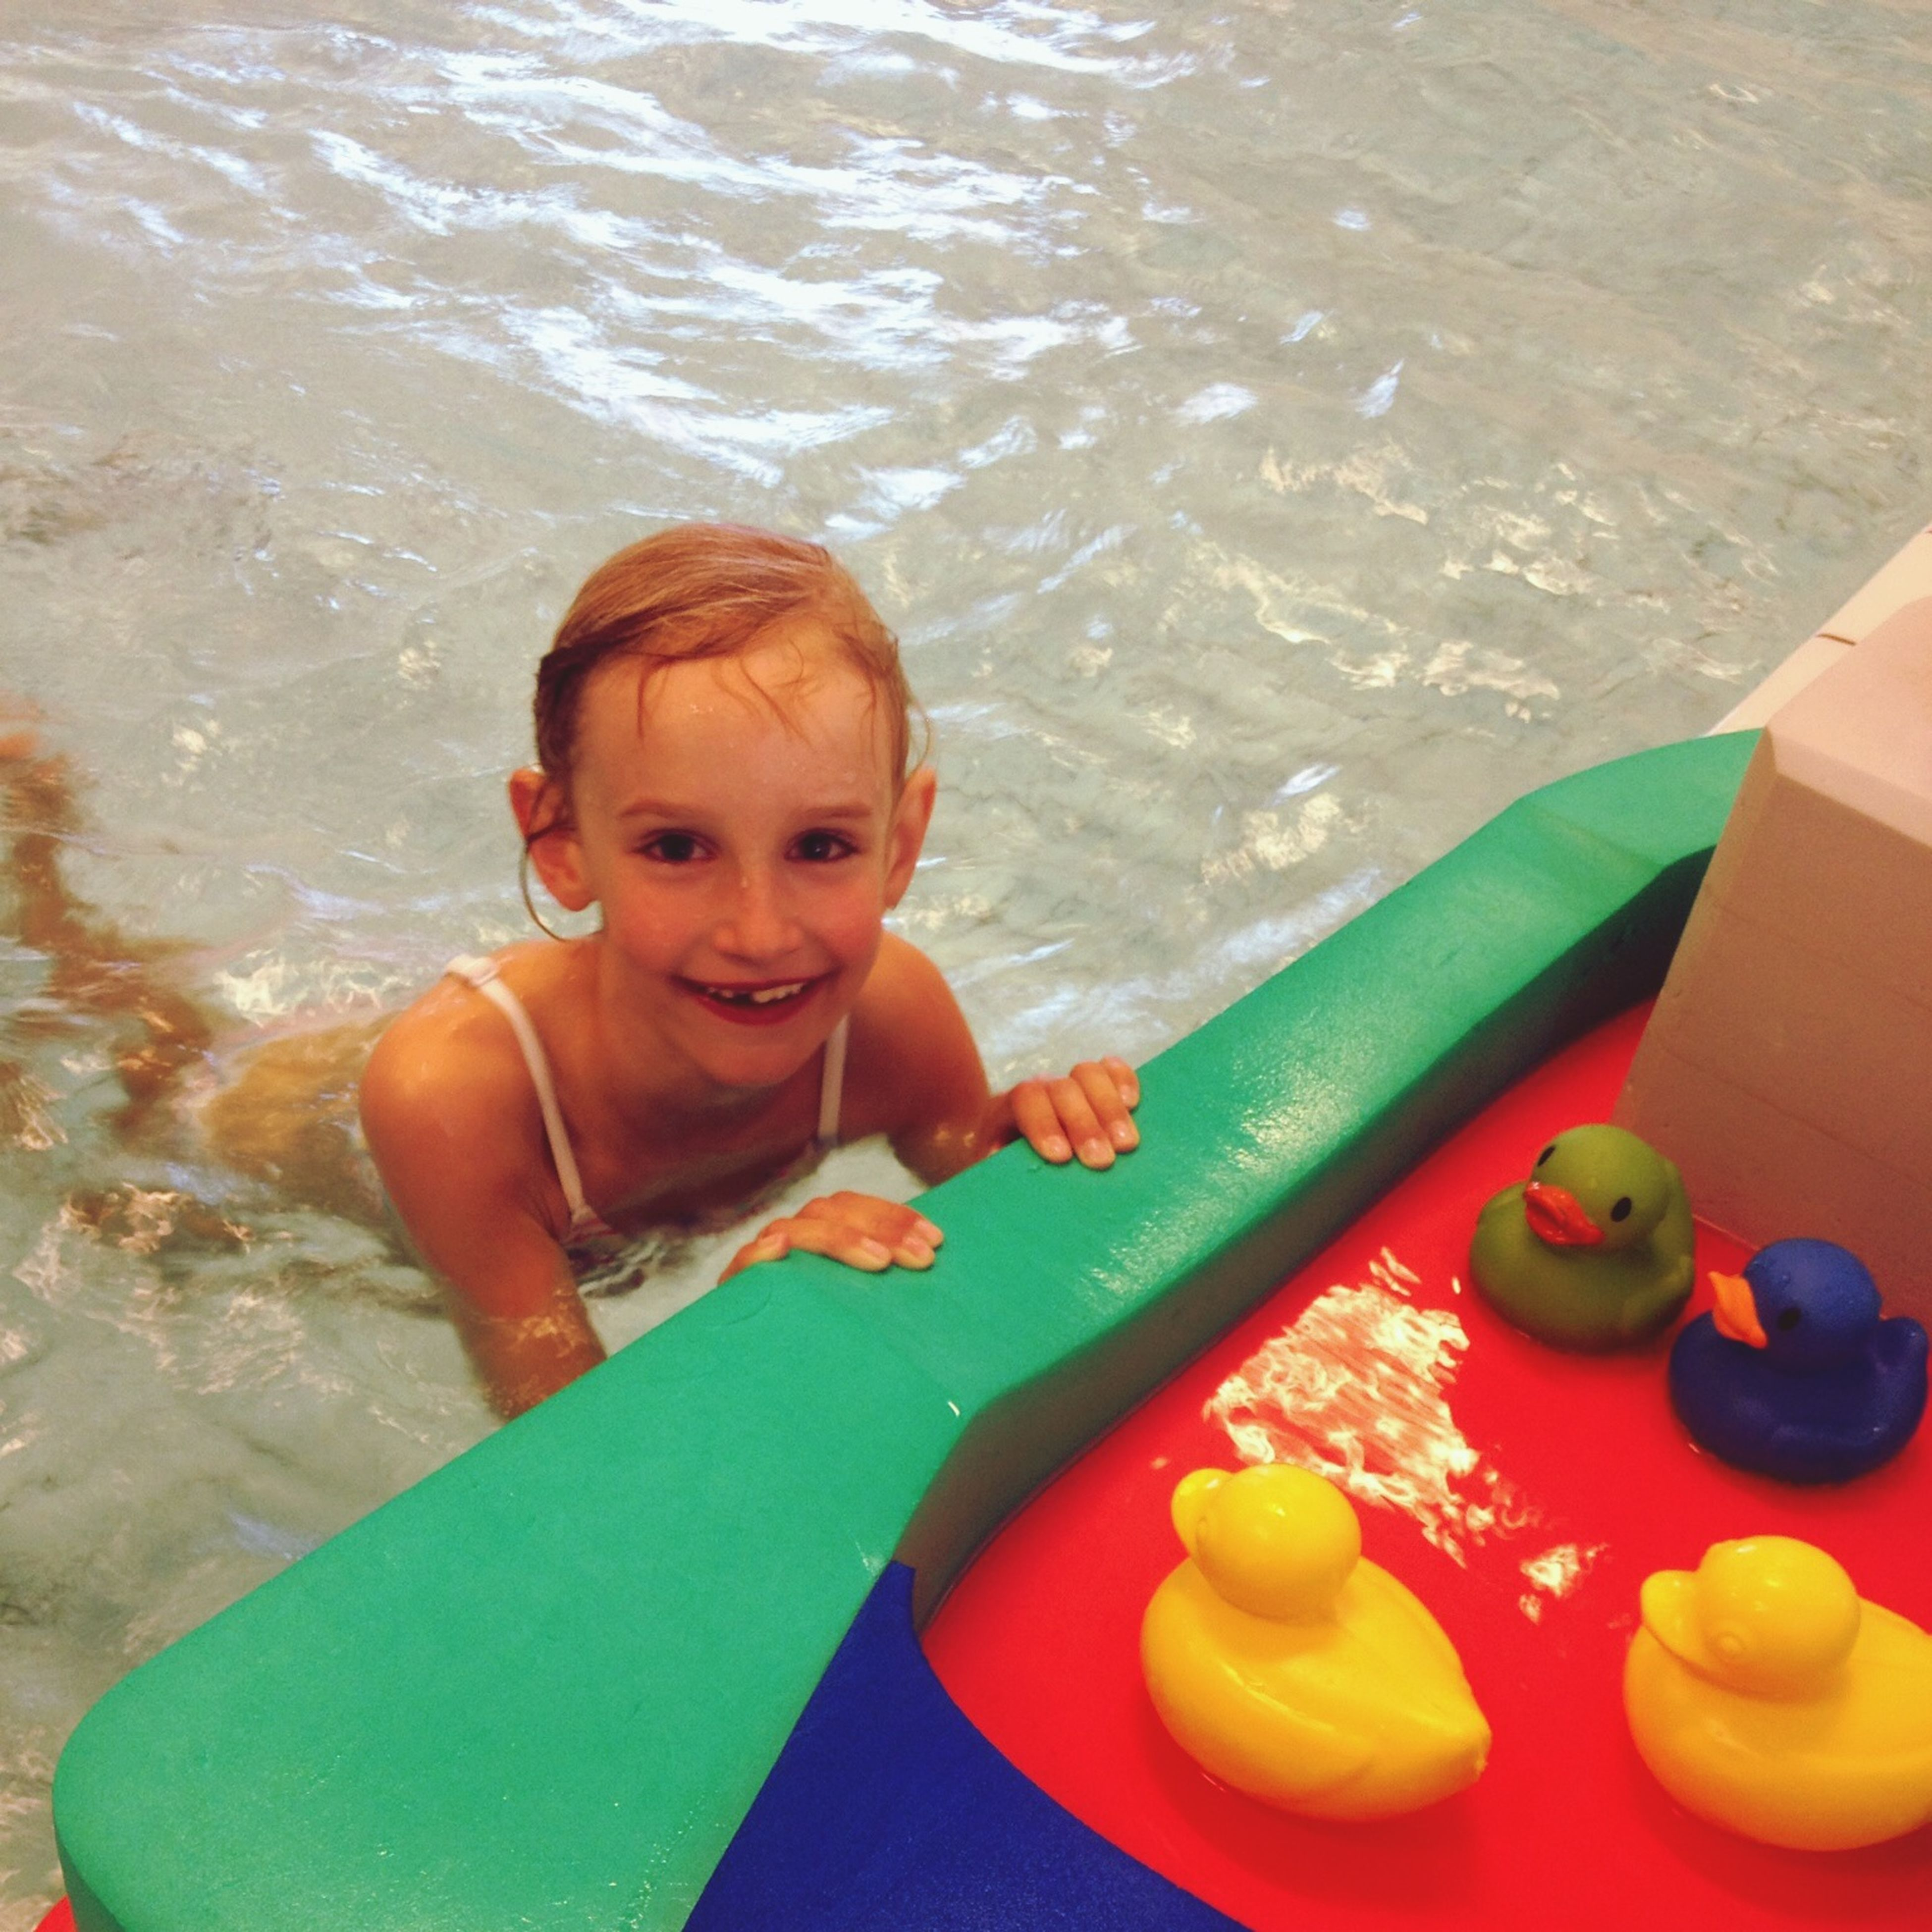 childhood, elementary age, cute, innocence, person, boys, girls, high angle view, water, lifestyles, leisure activity, happiness, portrait, preschool age, looking at camera, smiling, toddler, baby